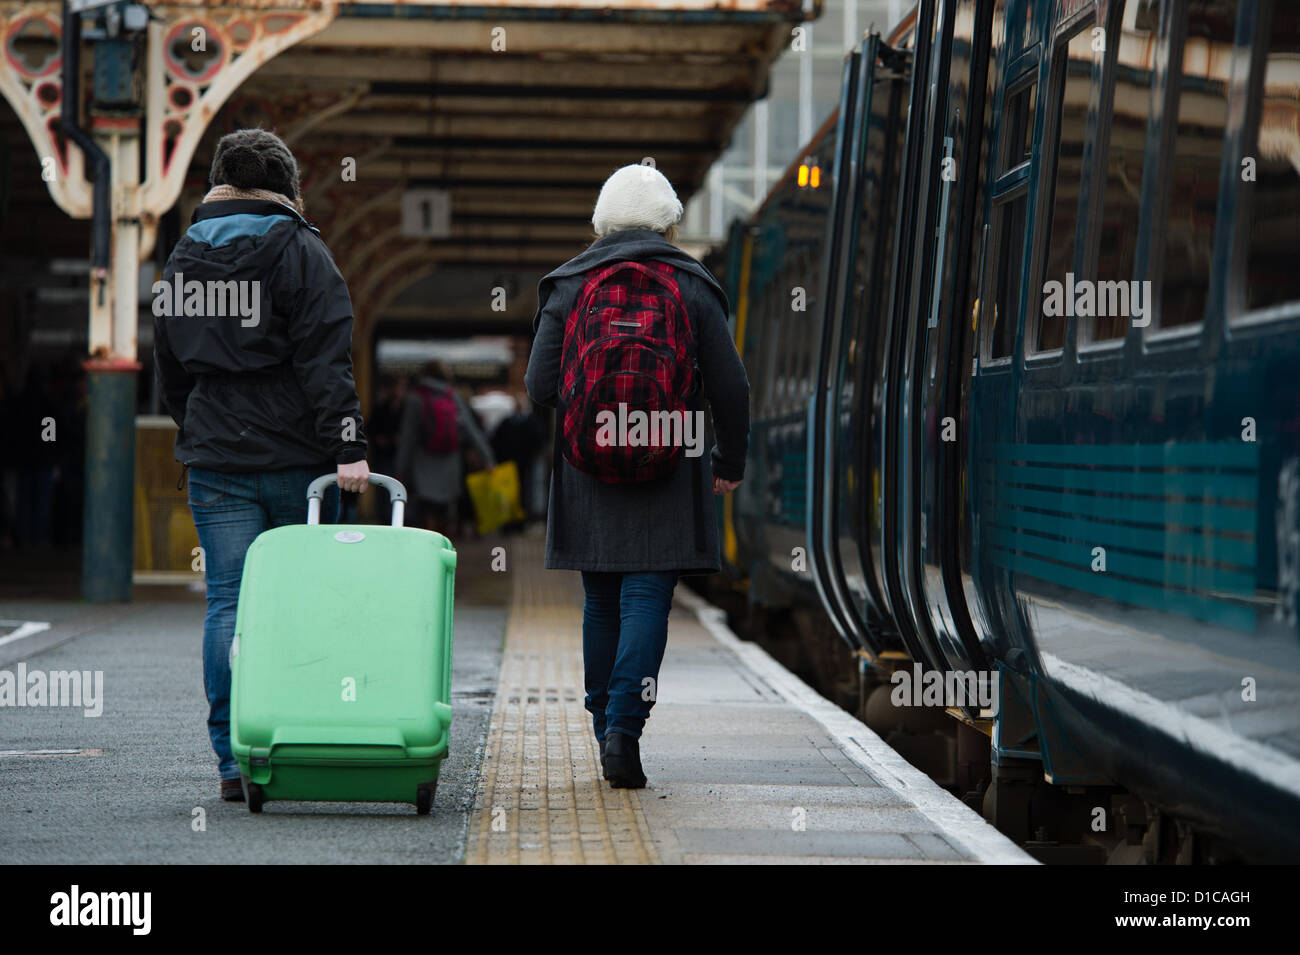 Aberystwyth, Wales, UK, December 15 2012:  Groups of young University and college students carrying bags of luggage - Stock Image